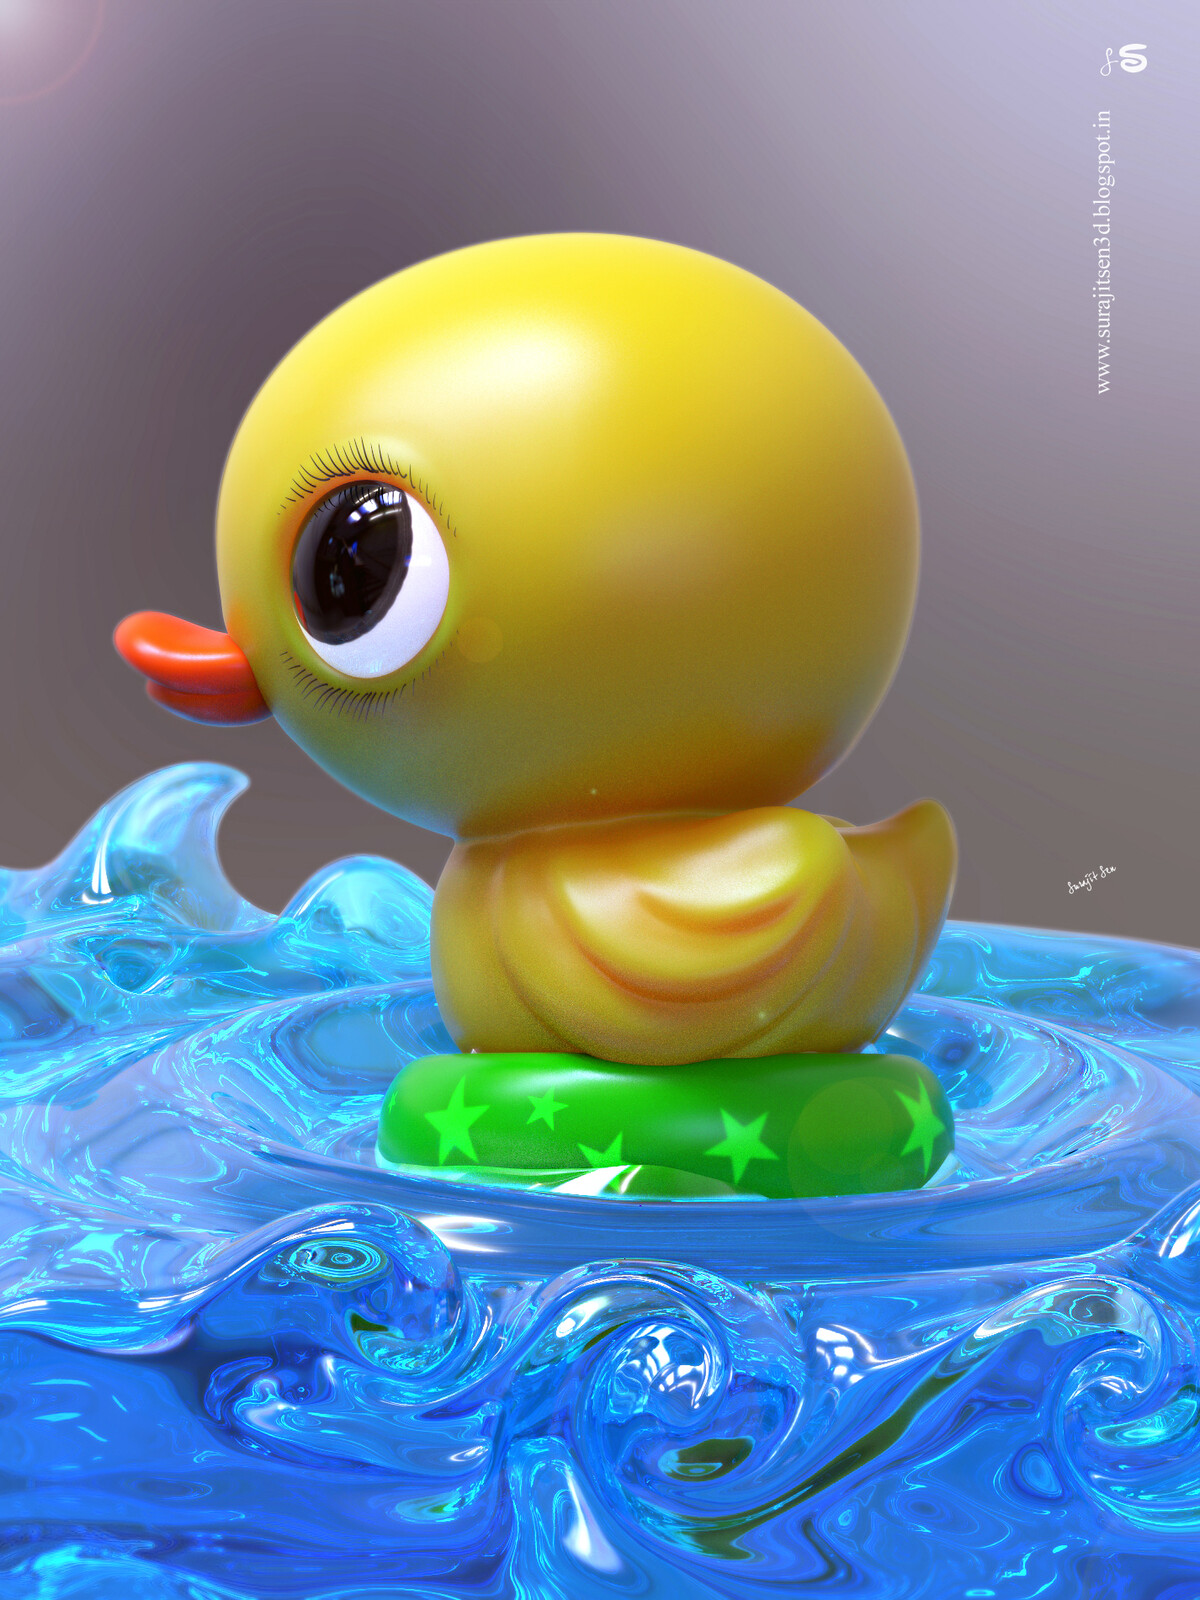 """""""Pingpong -CG Duck"""" Played with brushes! Wish to share my quick digital sculpt study of #duck! Hope you like it  :)"""